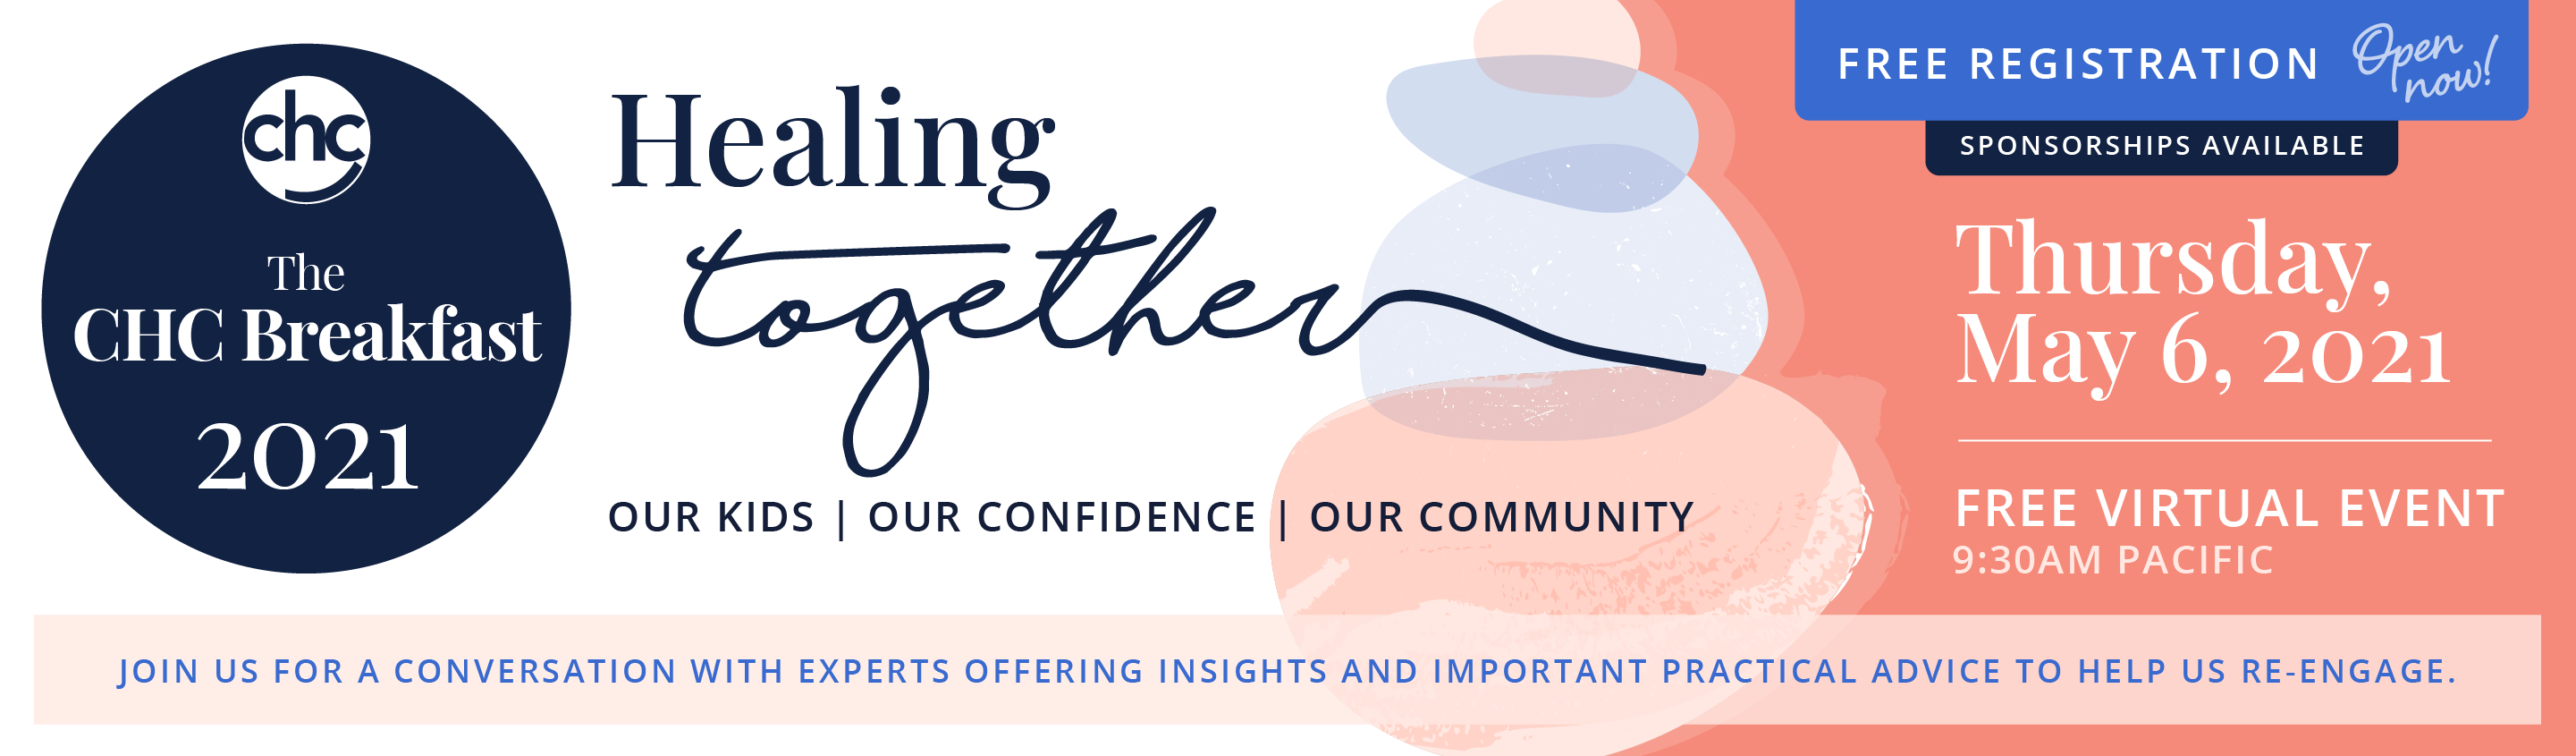 CHC. The CHC Breakfast 2021. Healing Together. Our Kids. Our Confidence. Our Community. Join us for conversation with experts offering insights and important practical advice to help us re-engage. Free Registration. Open now! Sponsorships available. Thursday, May 6, 2021. Free virtual event. 9:30 AM Pacific.